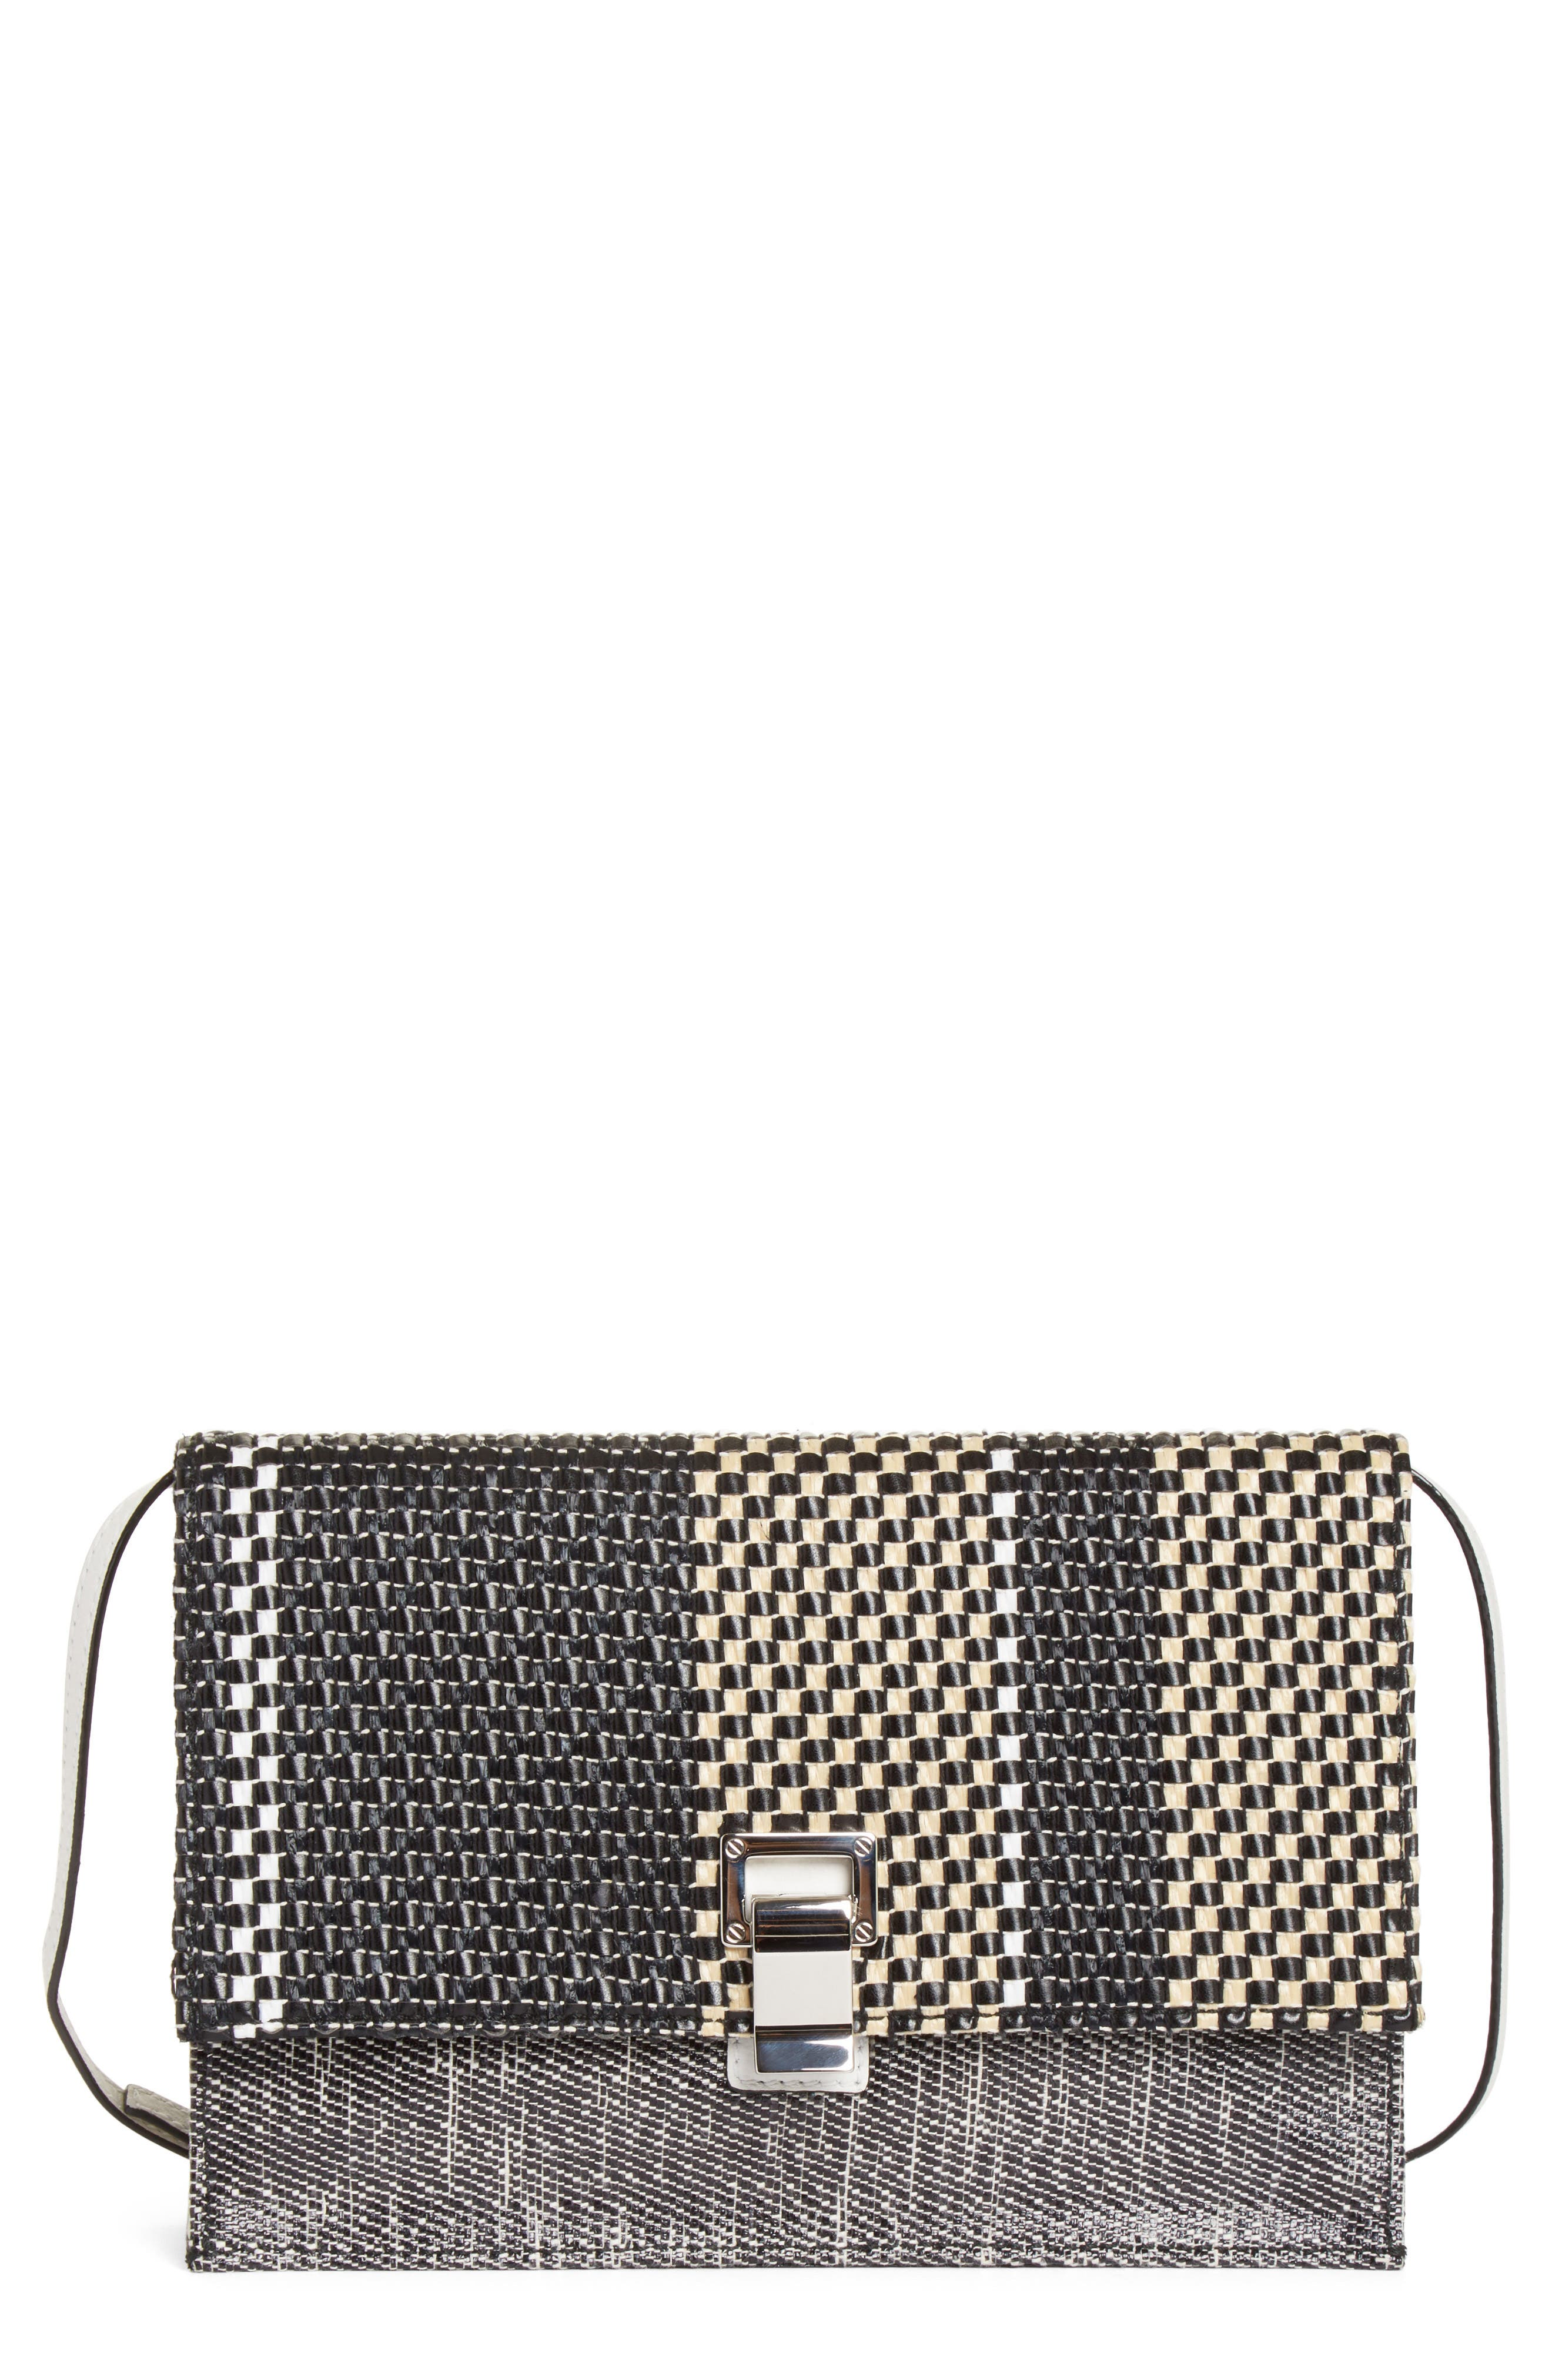 Alternate Image 1 Selected - Proenza Schouler Small Lunch Bag Woven Leather Shoulder Bag